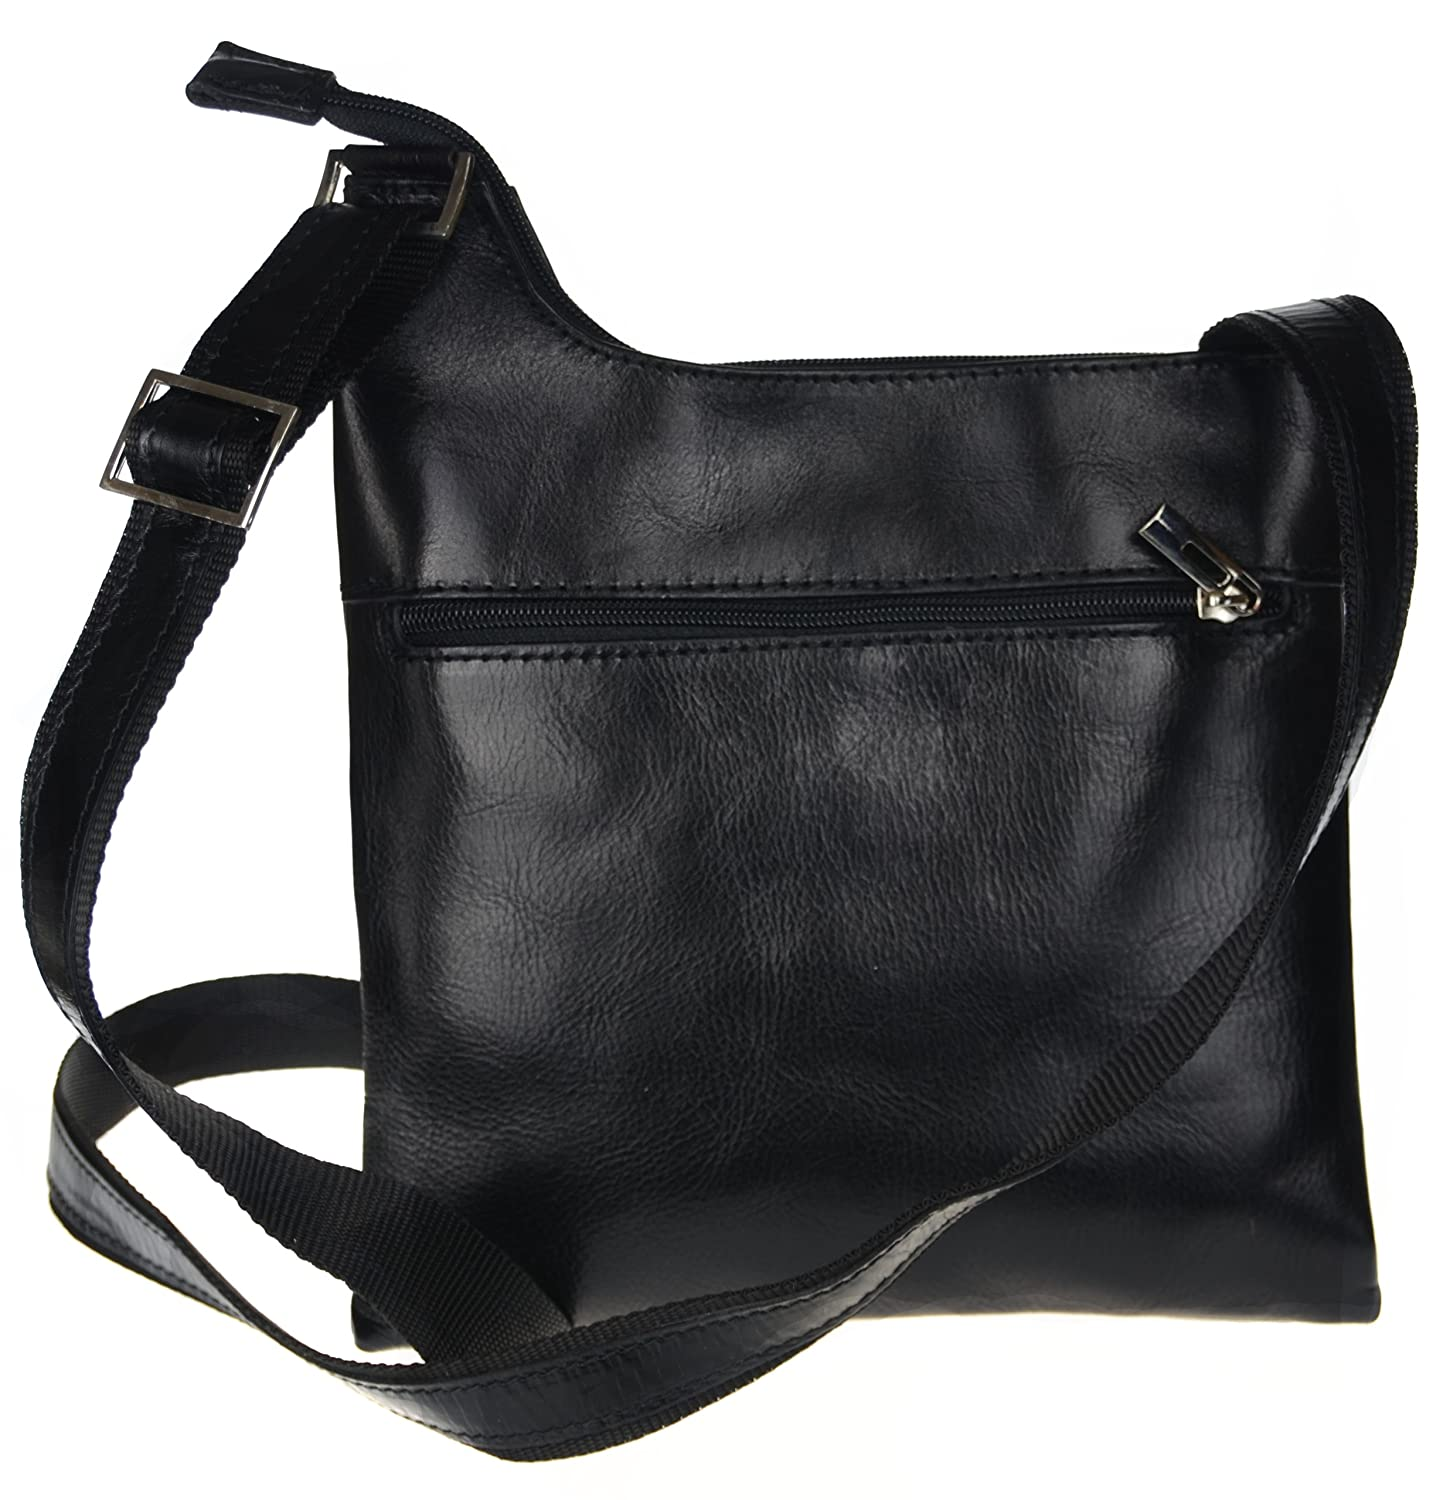 Bags4Less Messenger Bag BLACK